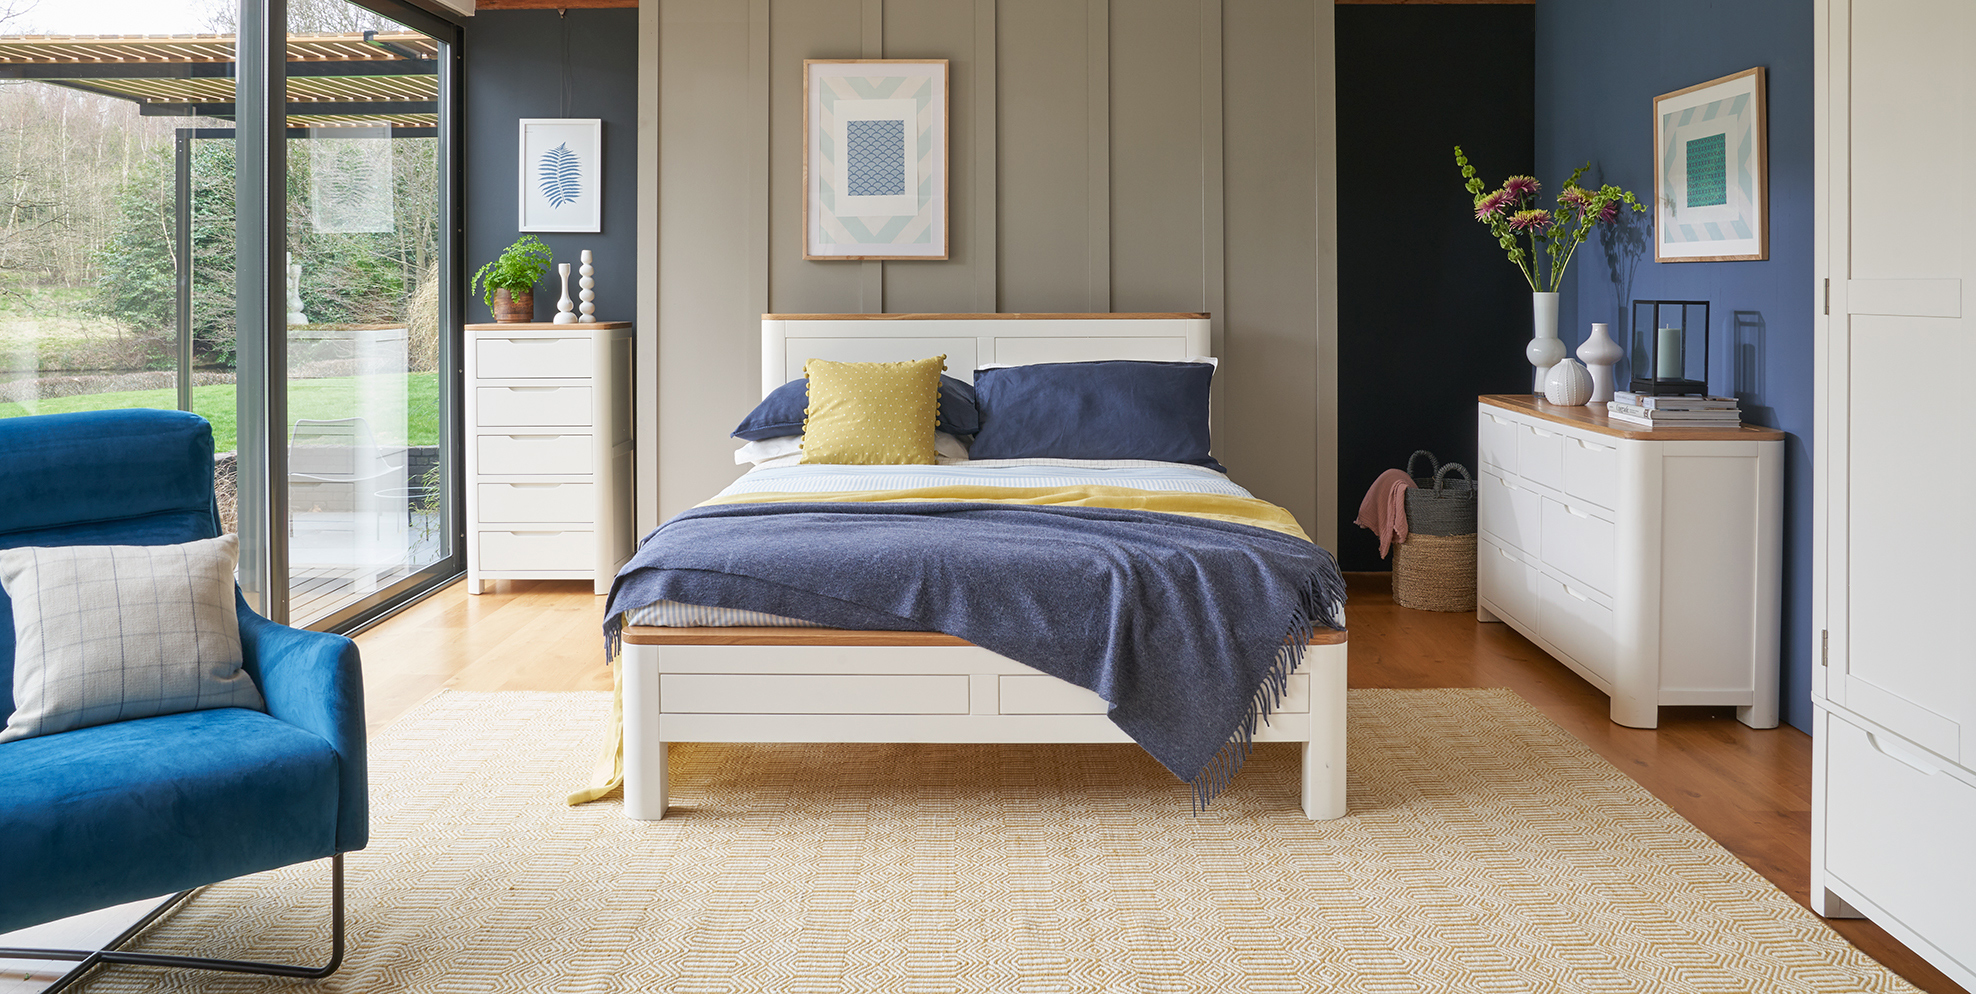 Oak Furniture Land Beds Introducing Brighton And Hove By Oak Furnitureland Fashion